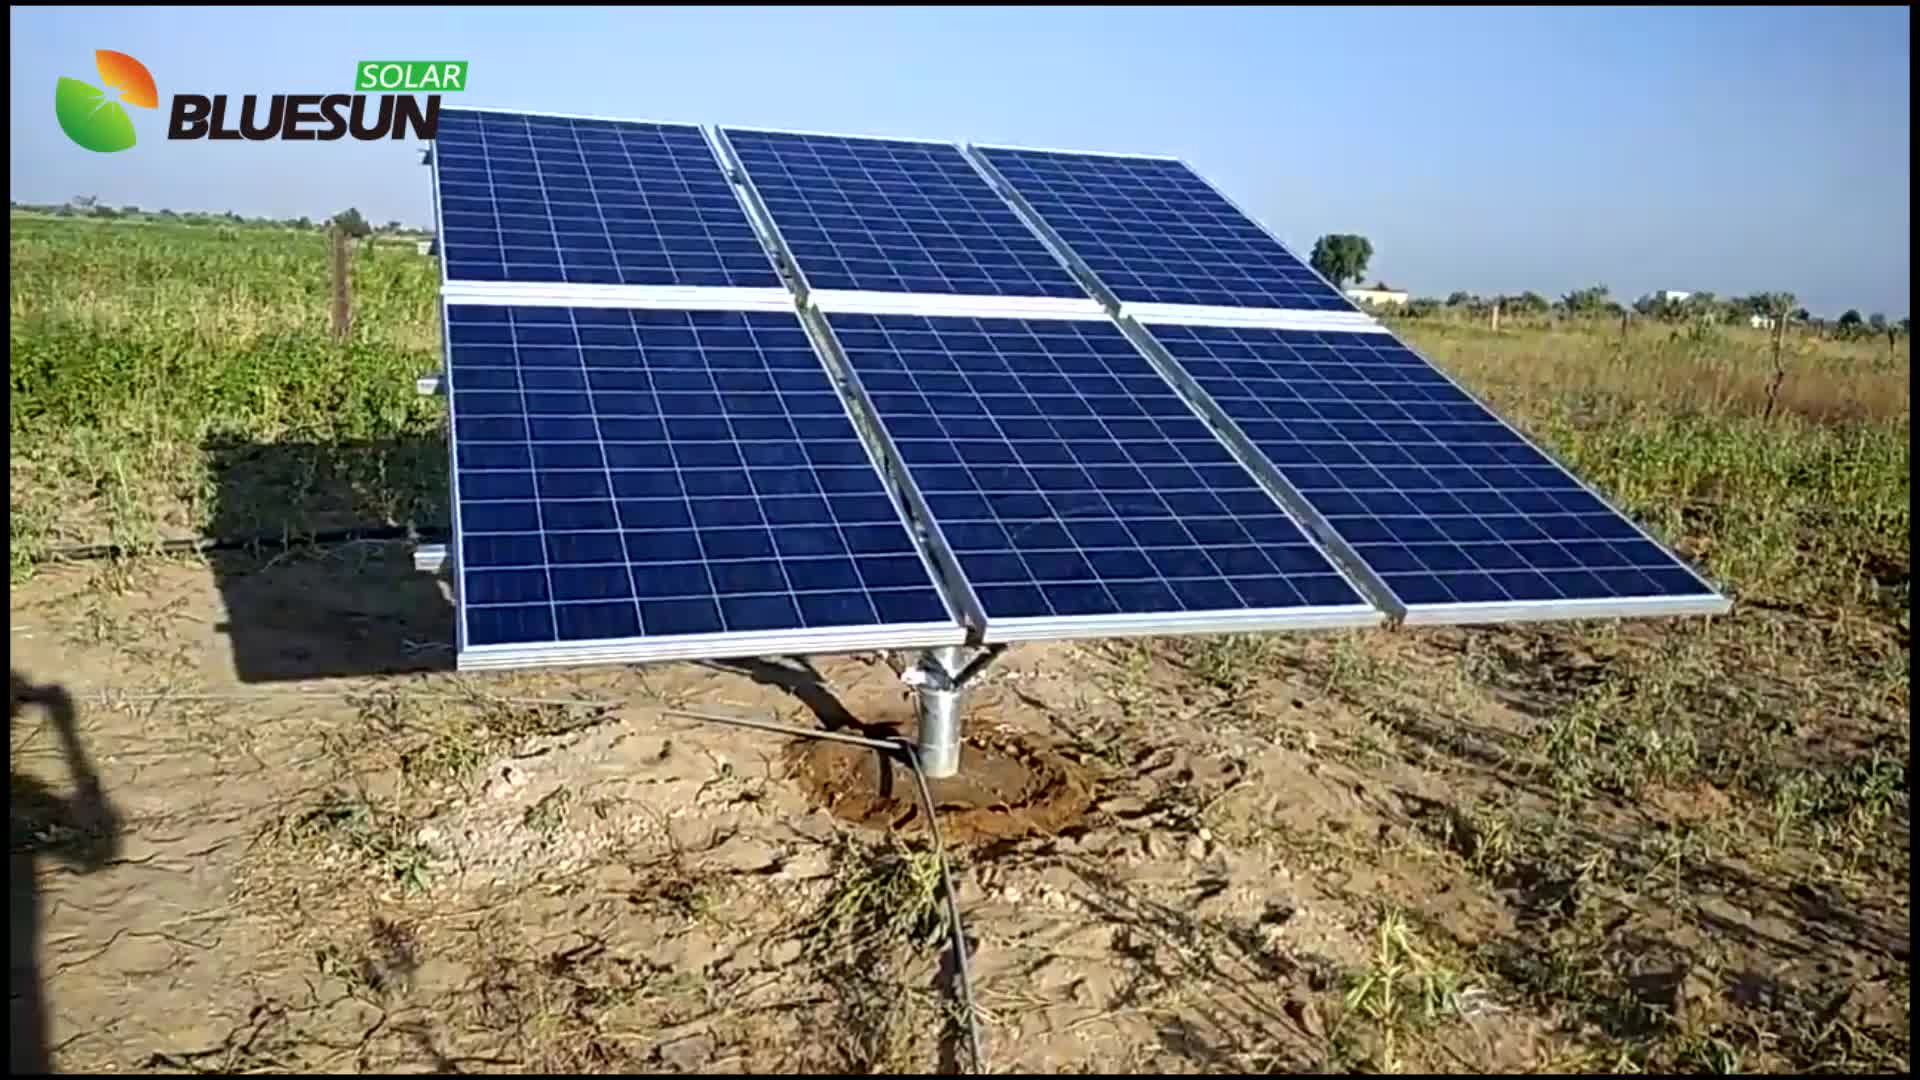 BLUESUN solar powered water pump 3 inches 4hp agriculture brushless high lift solar water dc solar submersible pump